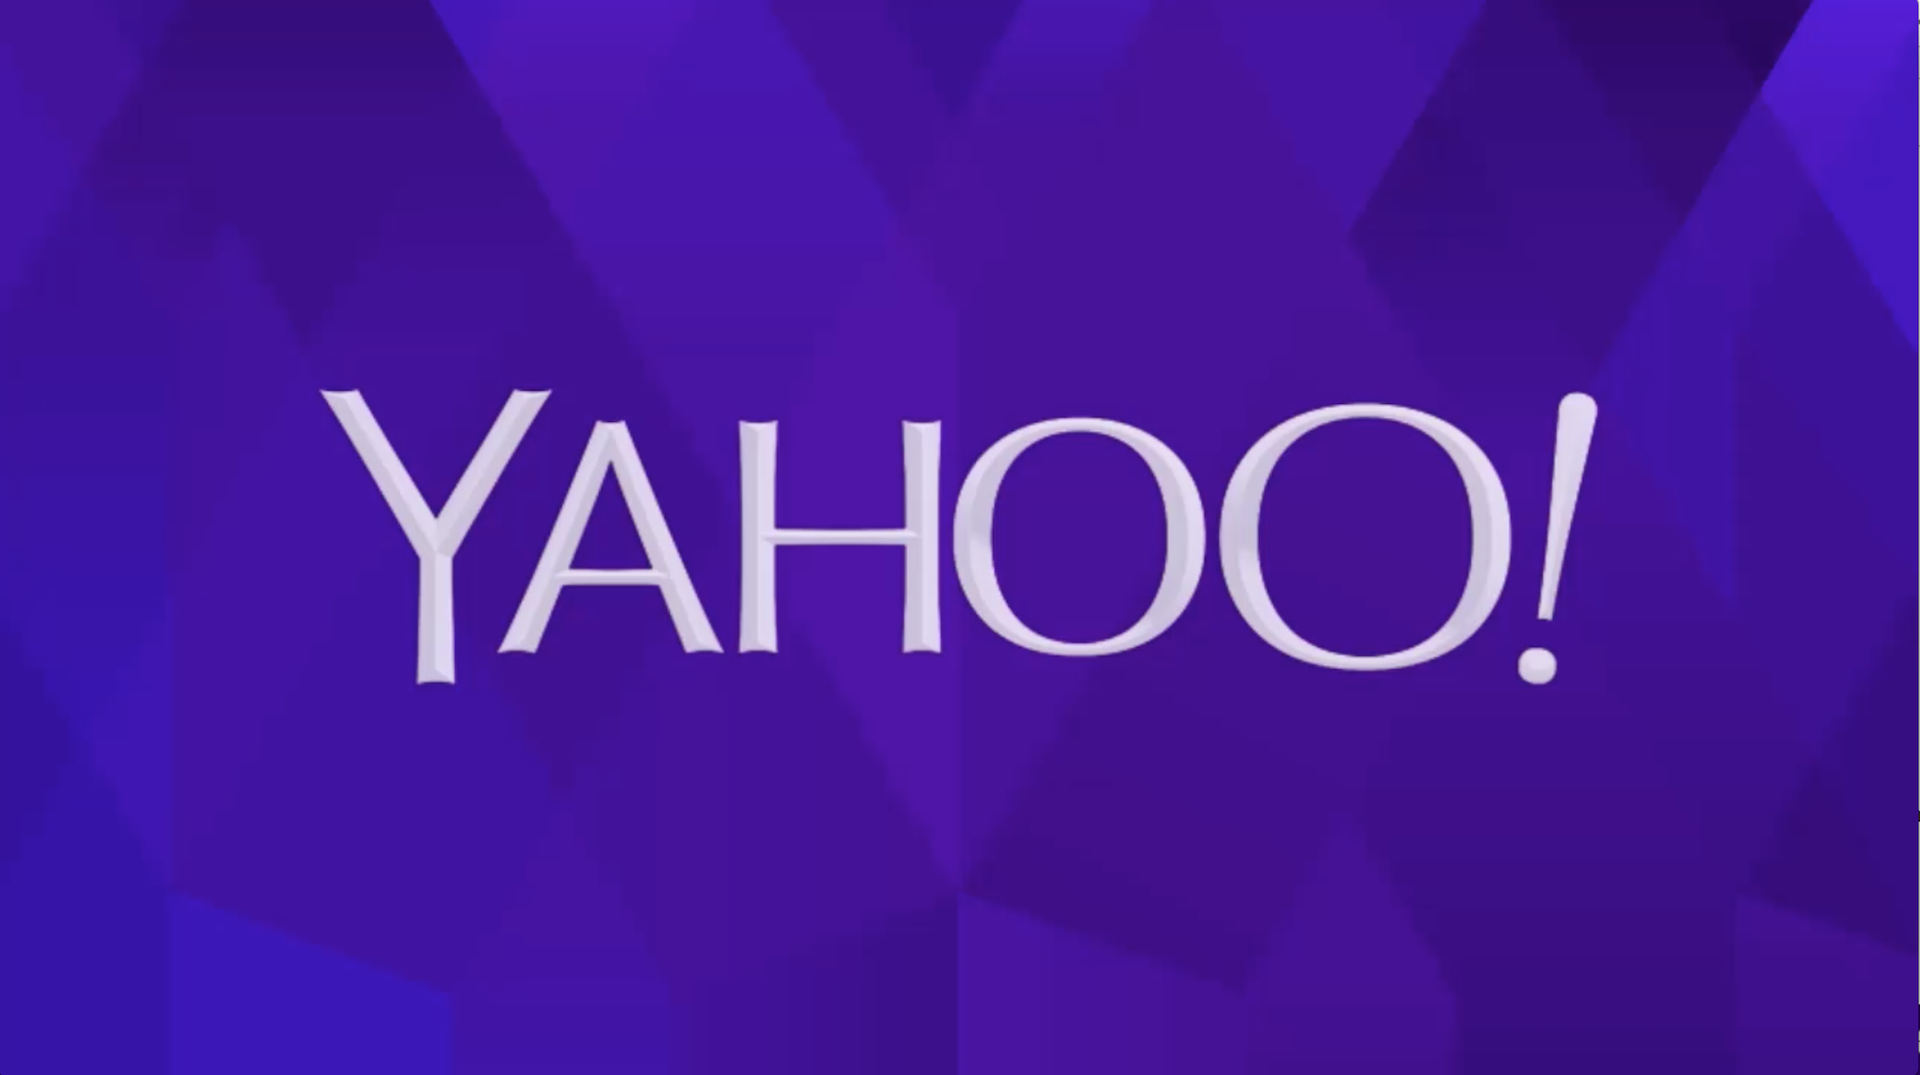 Yahoo business and economy shopping and services sex